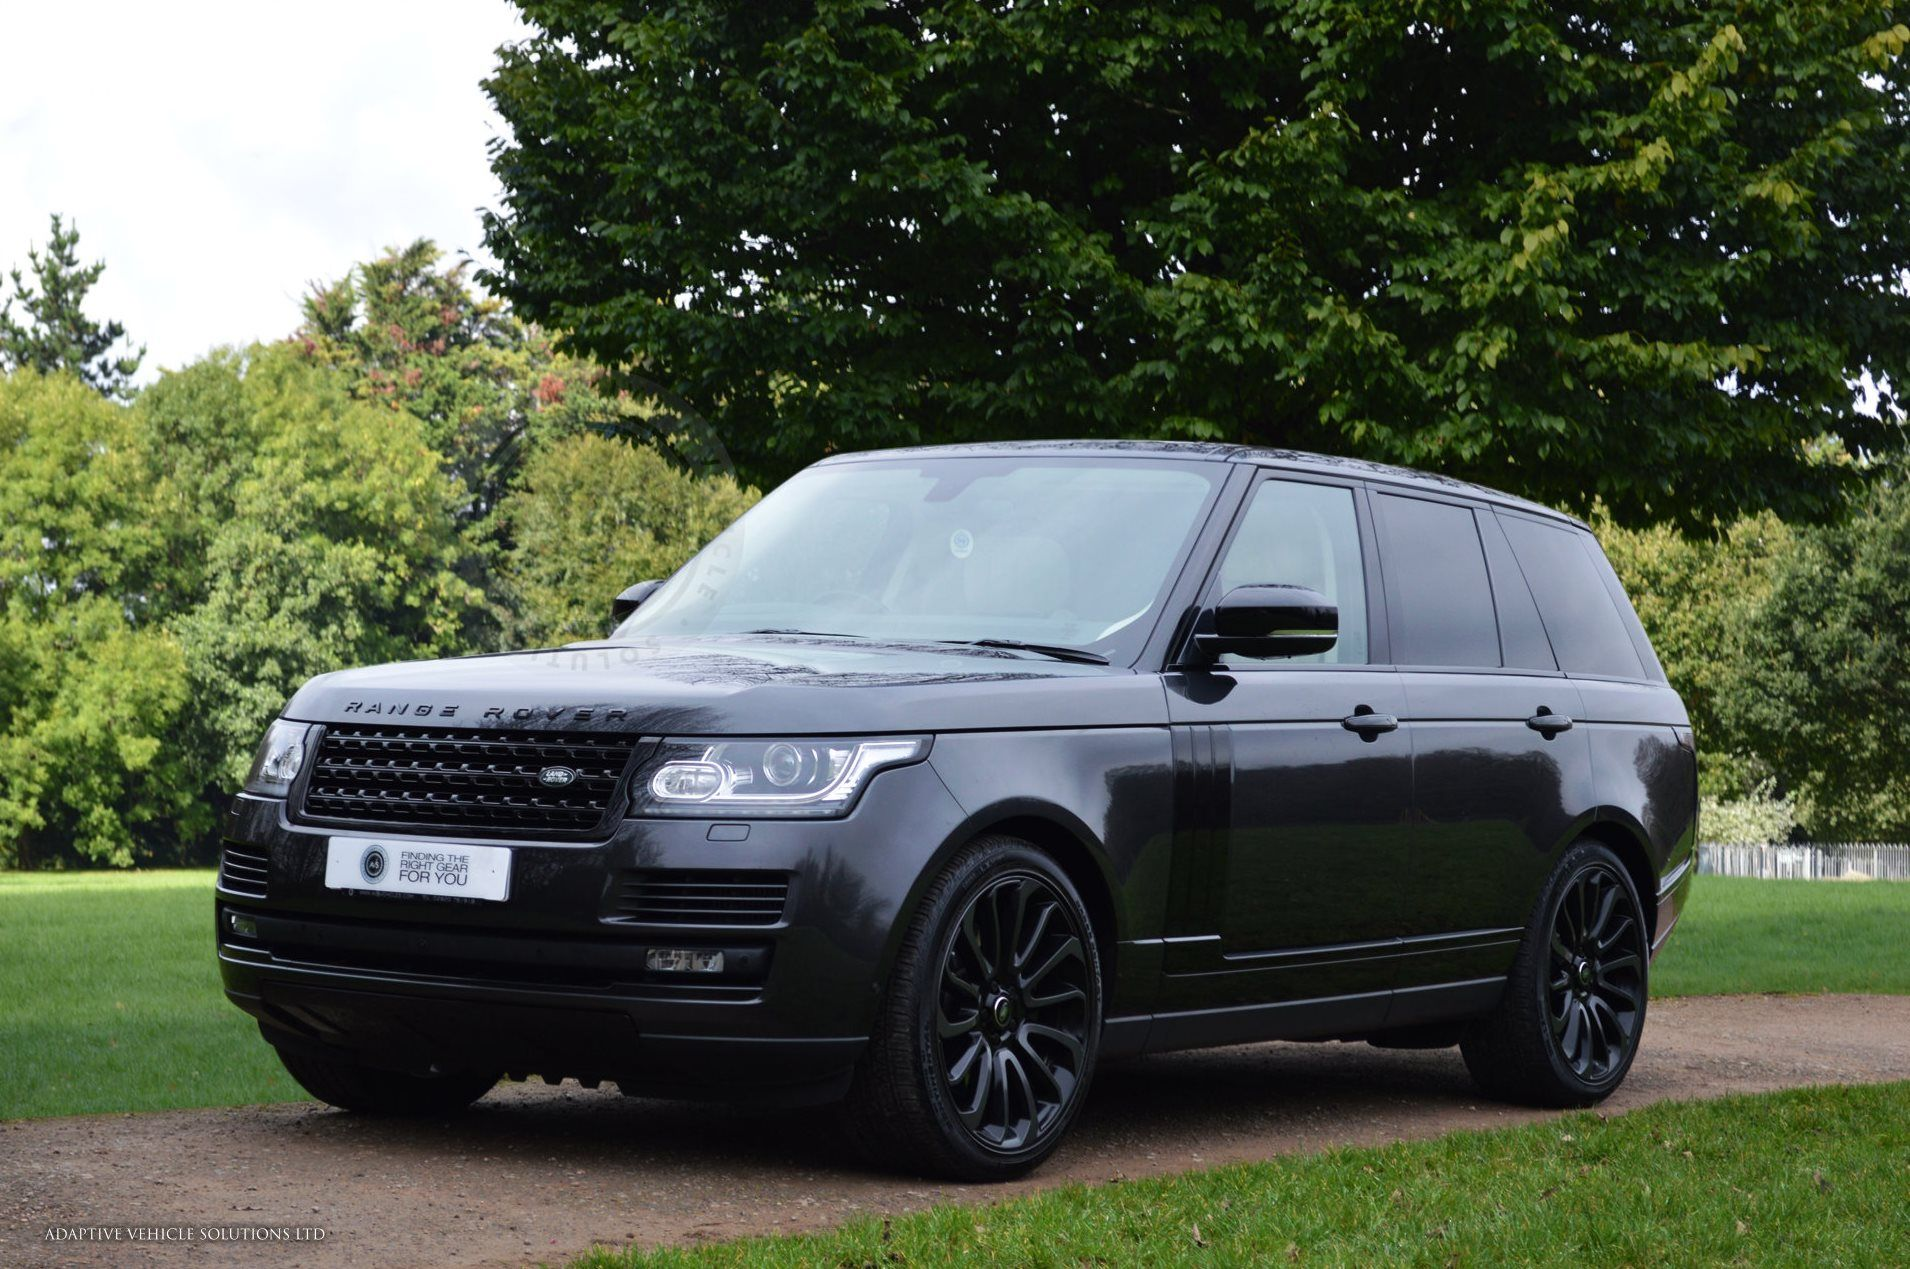 range rover autobiography petrol range rover range rover for sale supercharged avs contract. Black Bedroom Furniture Sets. Home Design Ideas